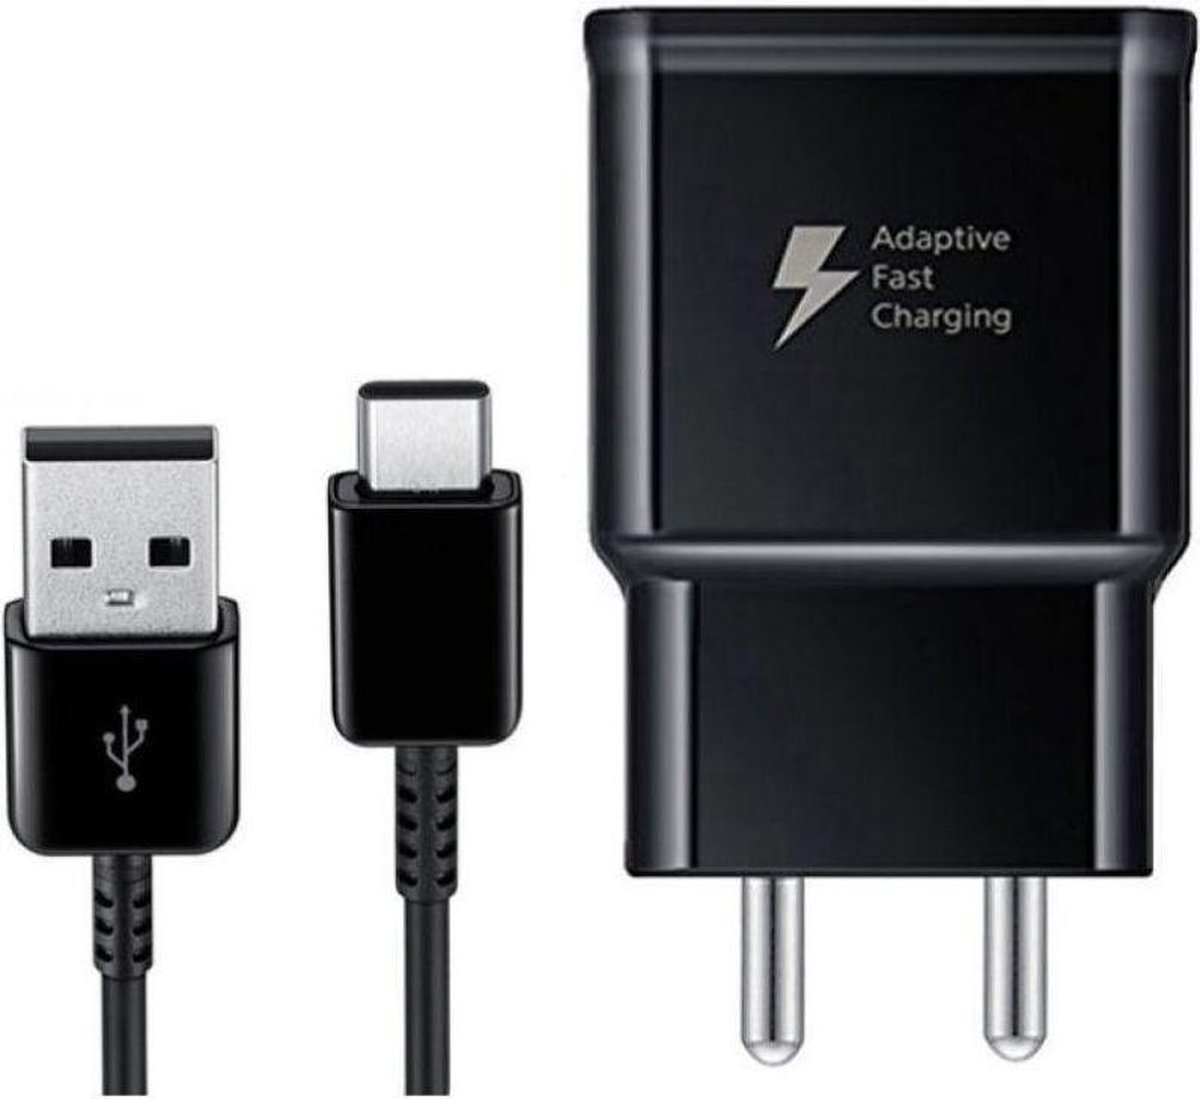 MBH Samsung USB-C snellader fast charger ook voor Sony, Huawei, LG - 1m type C - 2.0A